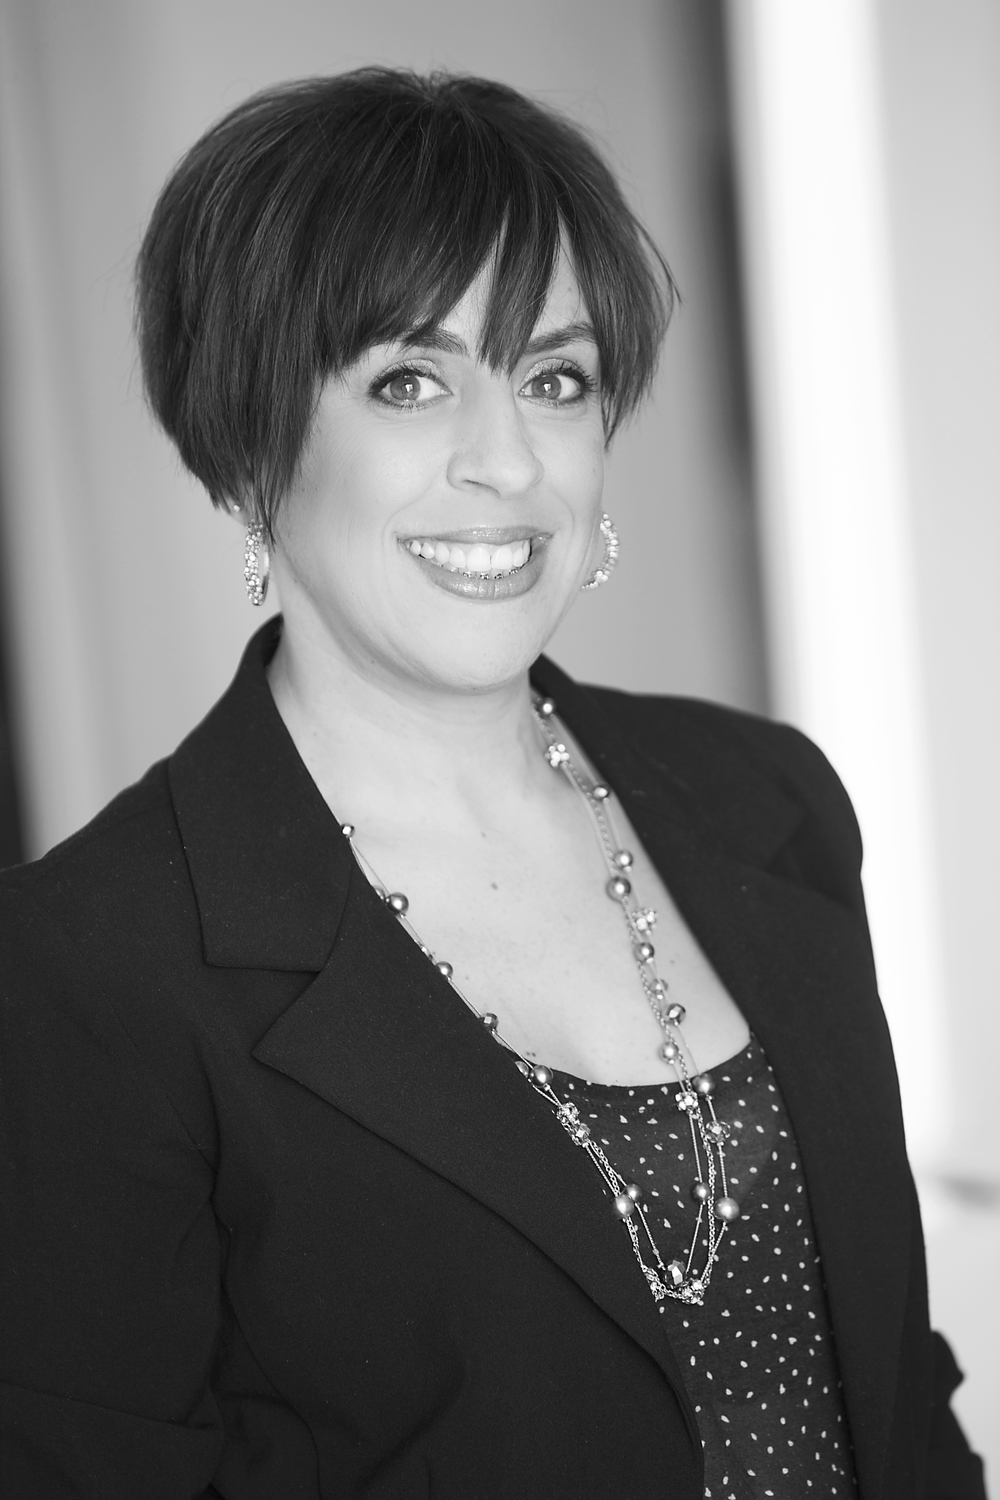 dina, stylist   Dina joined the Storm team in 1999. With a thirst for knowledge, Dina has attended some of the top education events in Canada and the United States. She takes pride in educating guests in how to achieve a salon look at home. Dina also shows a true affection for her guests with an enjoyable and memorable salon experience.